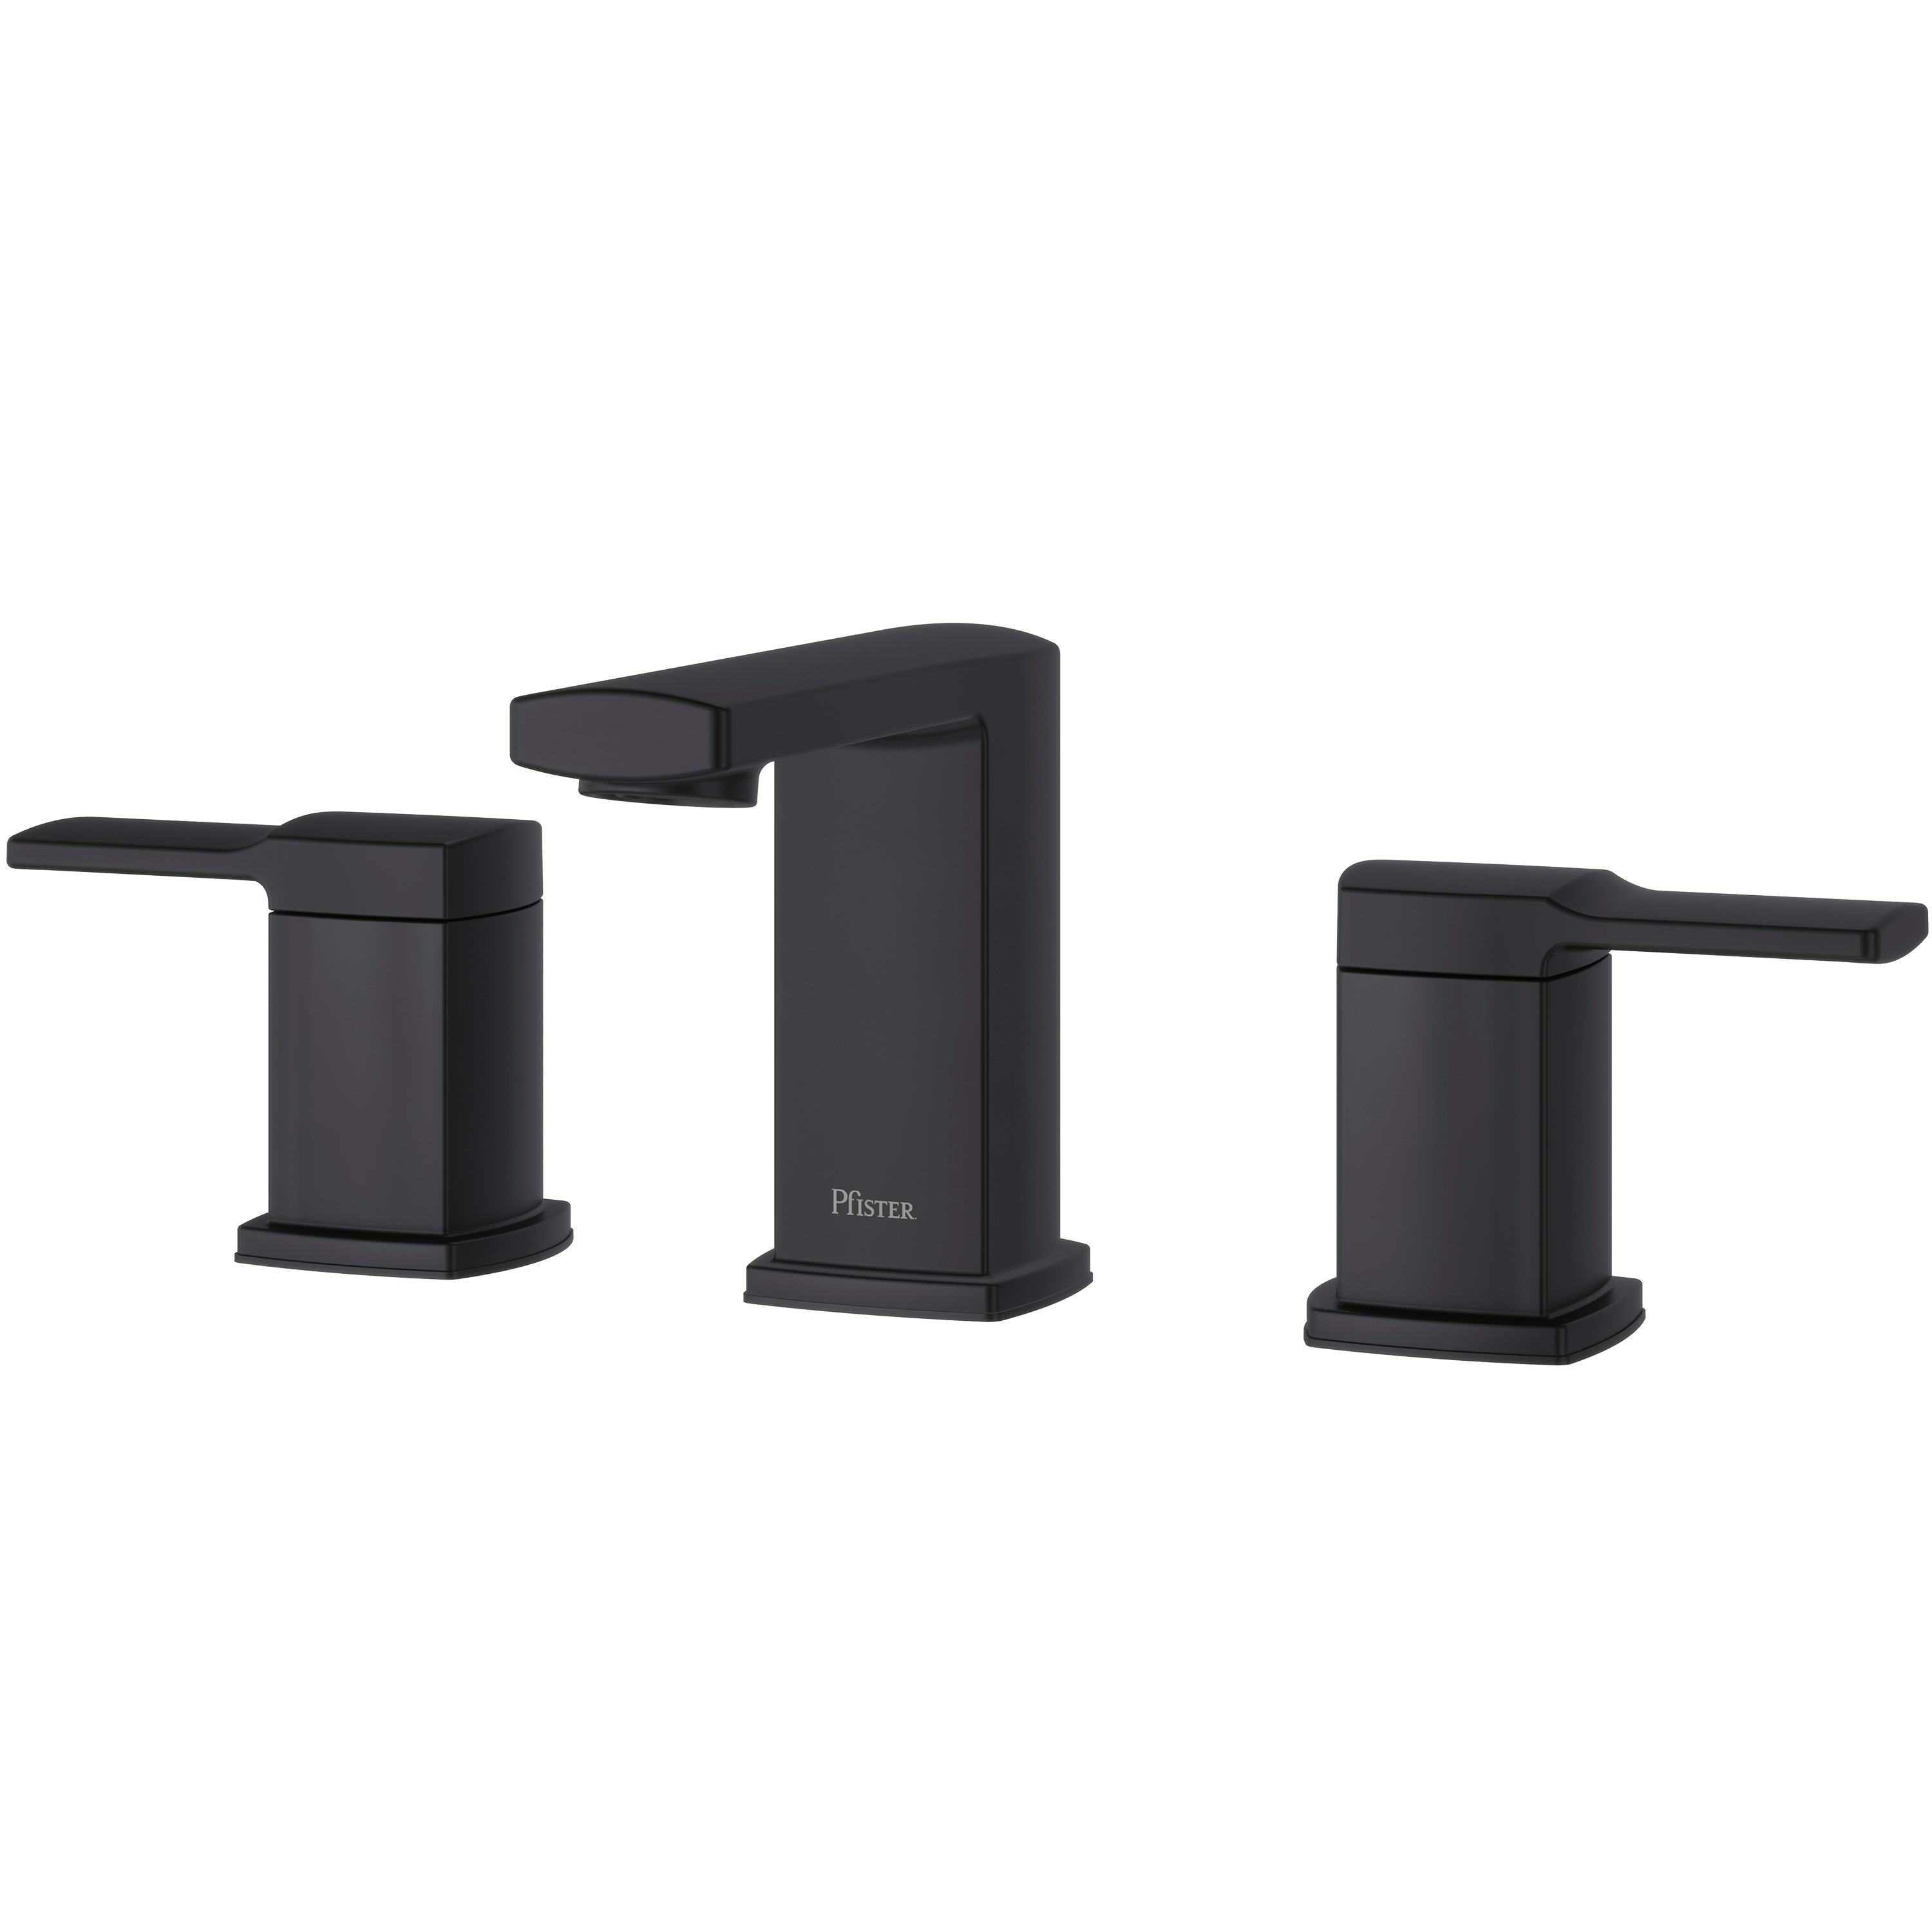 Pfister LG49-DA0B Matte Black Deckard 1.2 GPM Widespread Bathroom ...